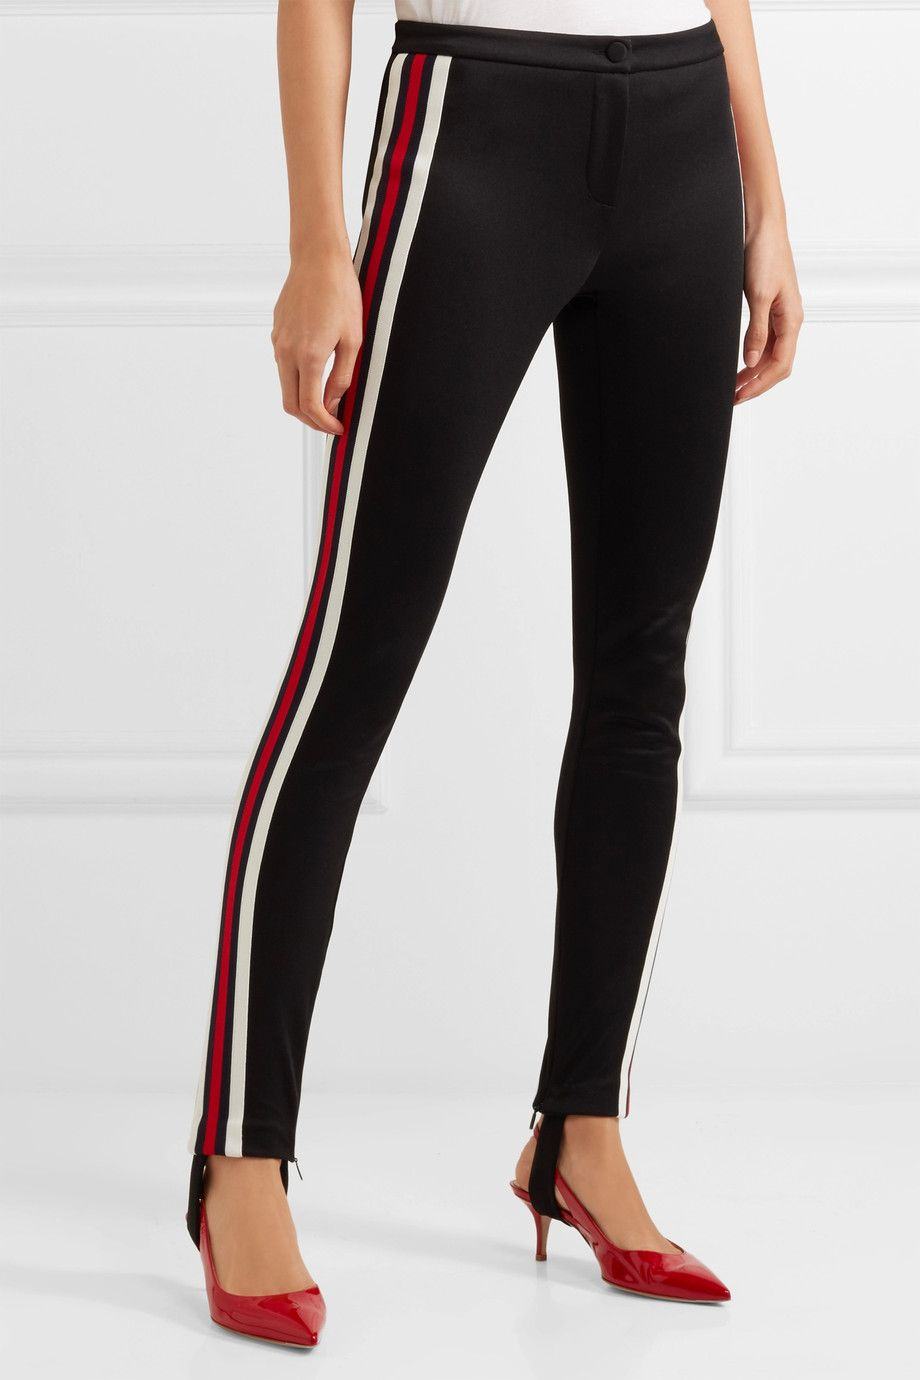 10a46ad49b6 Gucci - Striped tech-jersey stirrup leggings